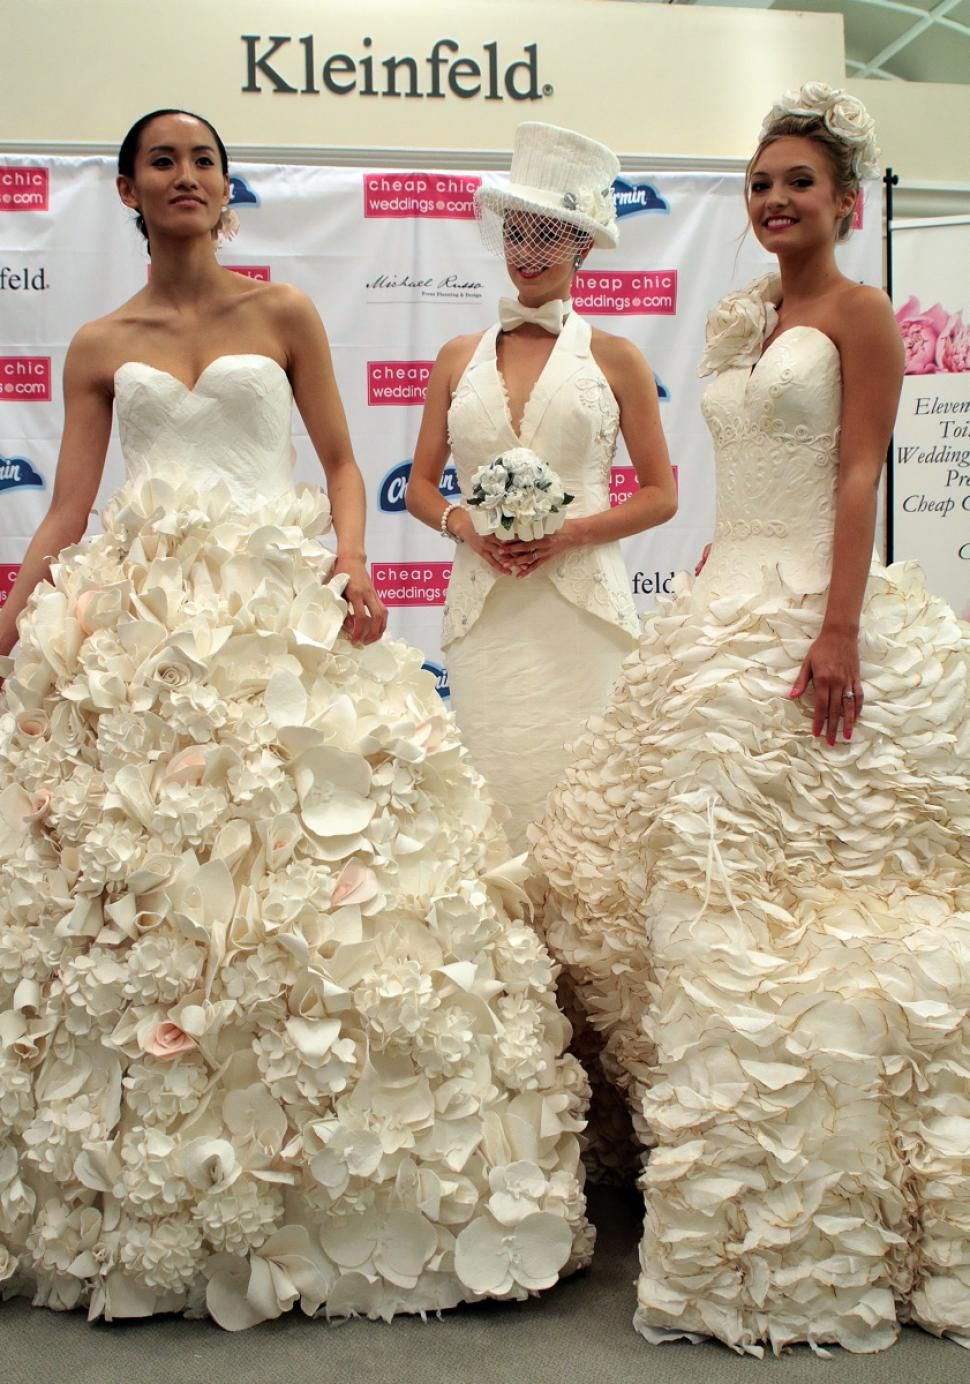 11th Annual Toilet Paper Wedding Dress Contest Toilet Paper Wedding Dress Wedding Dresses Wtoo Wedding Dress